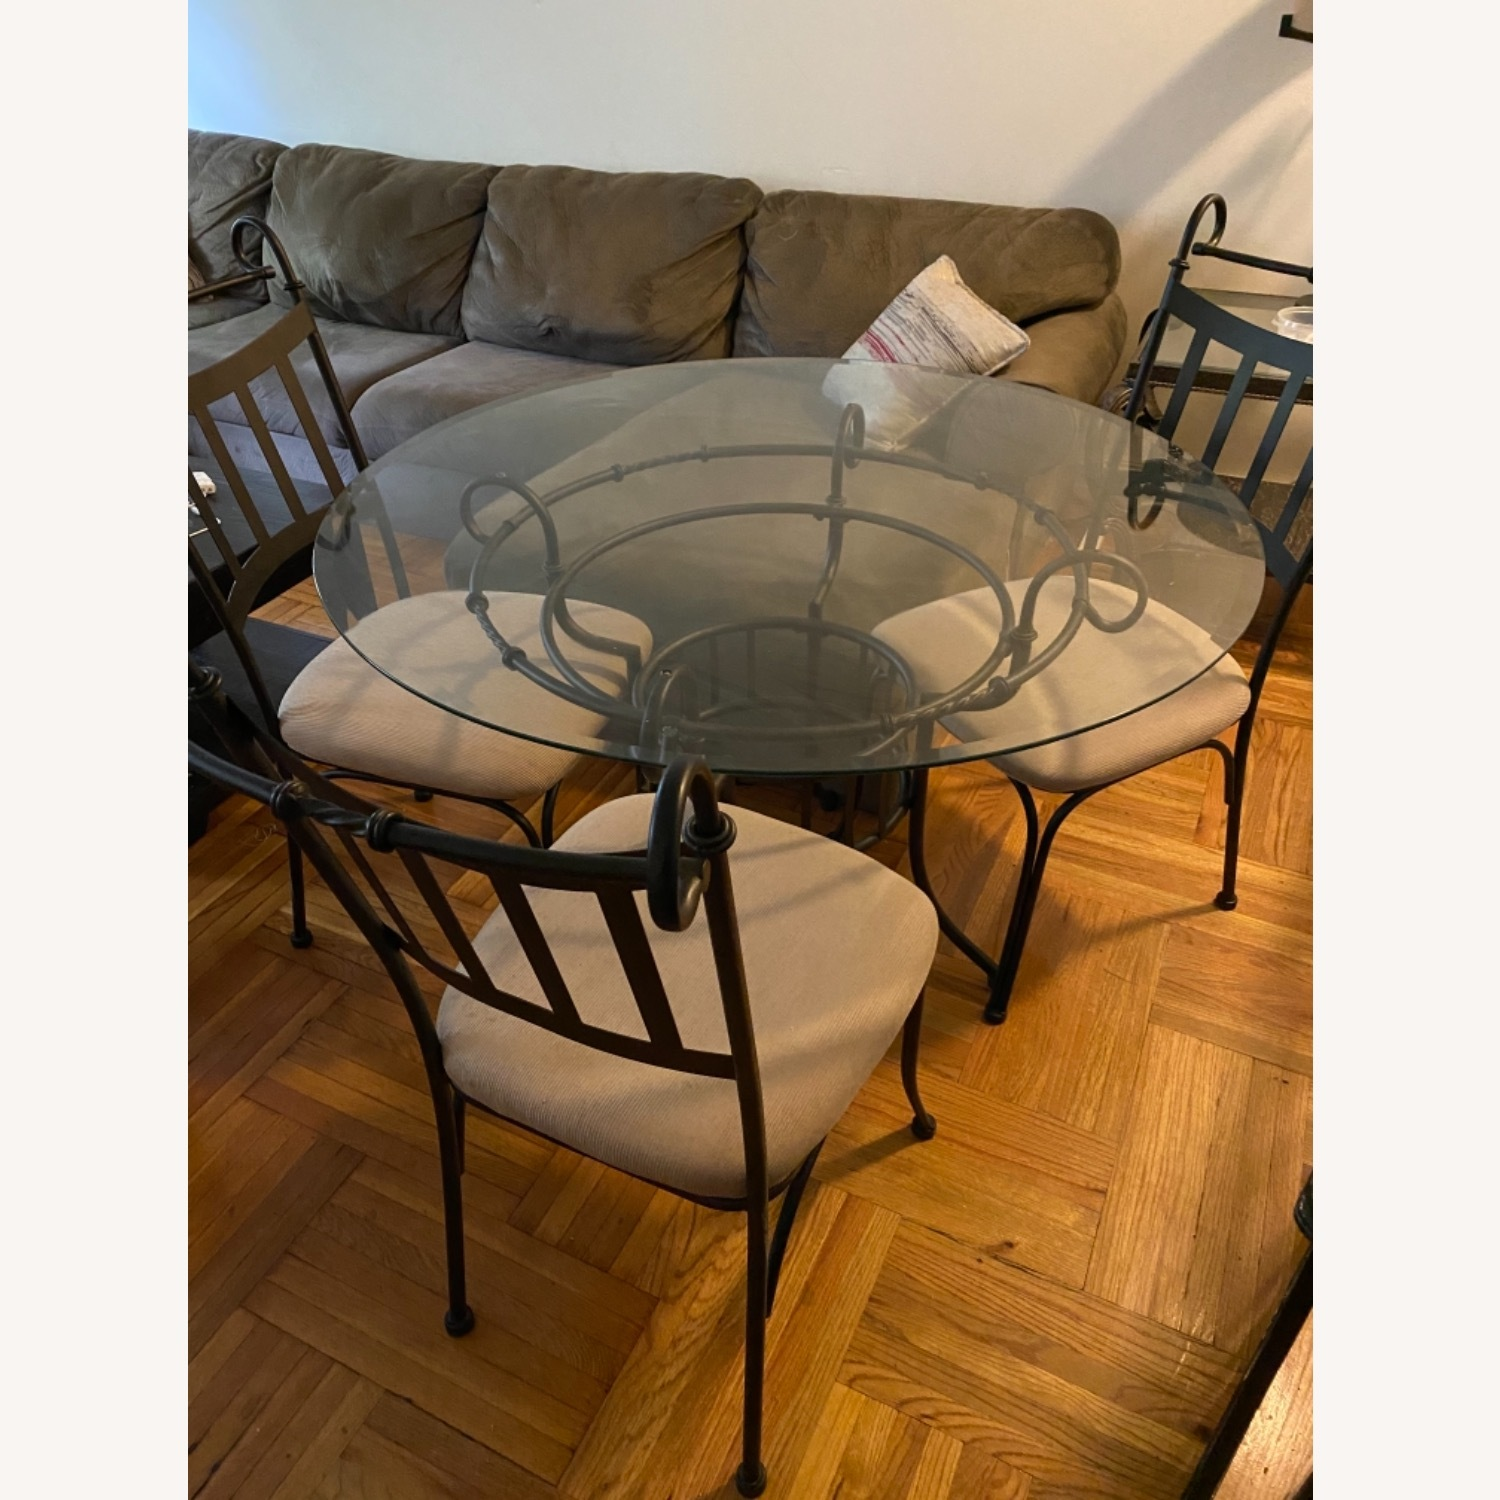 Glass Table and Three Chair Dining Set - image-1